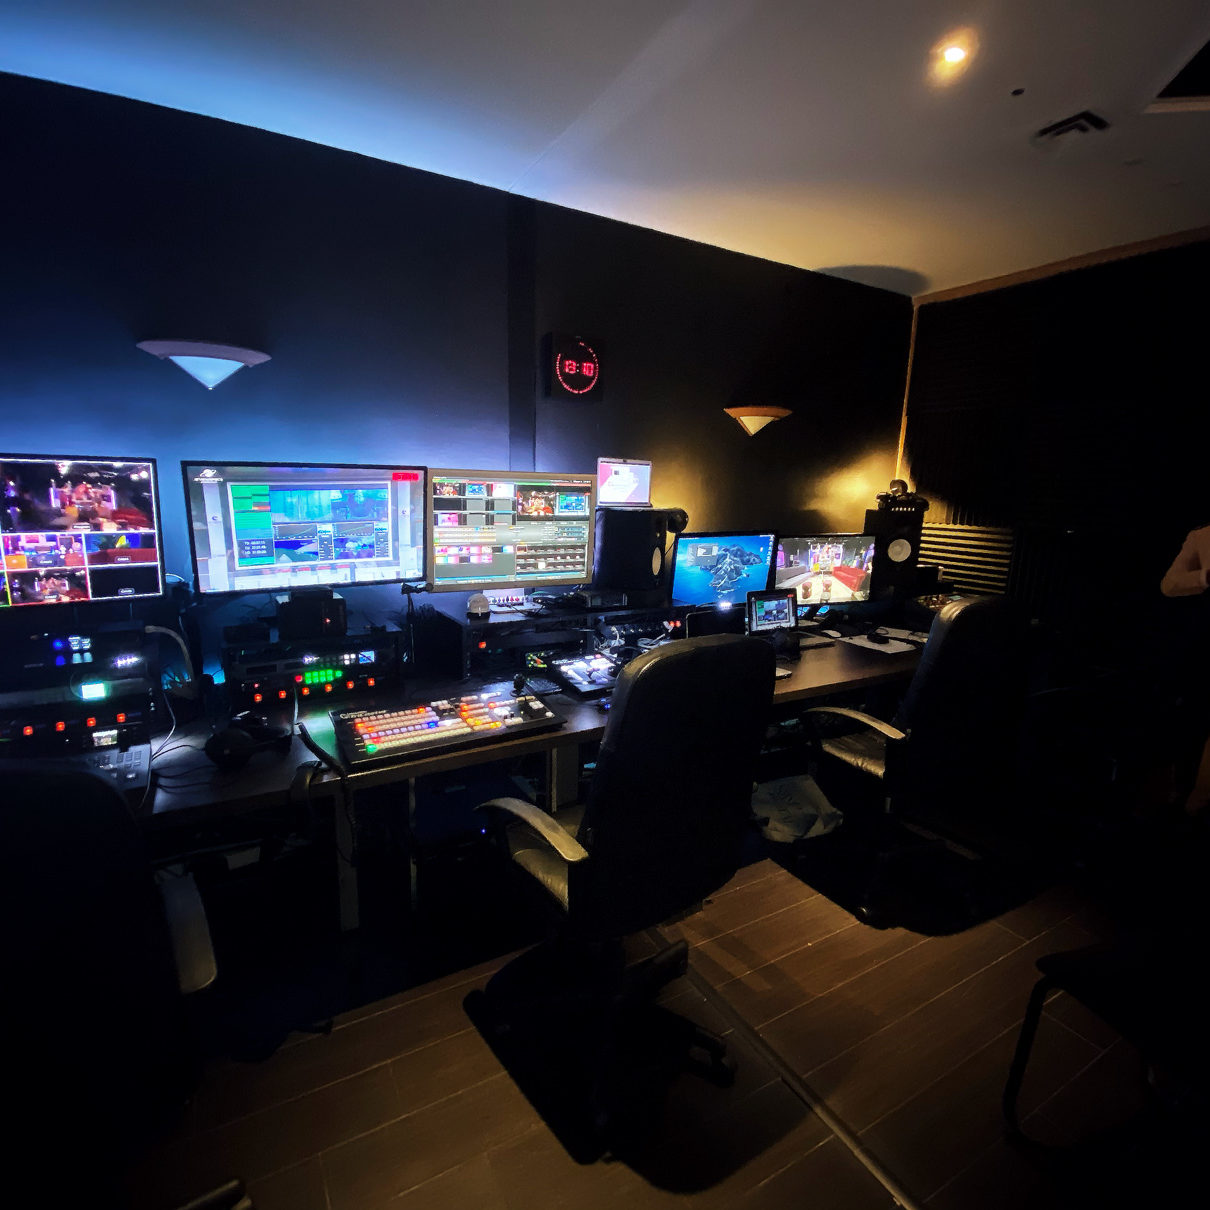 Full servie live broadcasting studio in Paris - Videology Studio